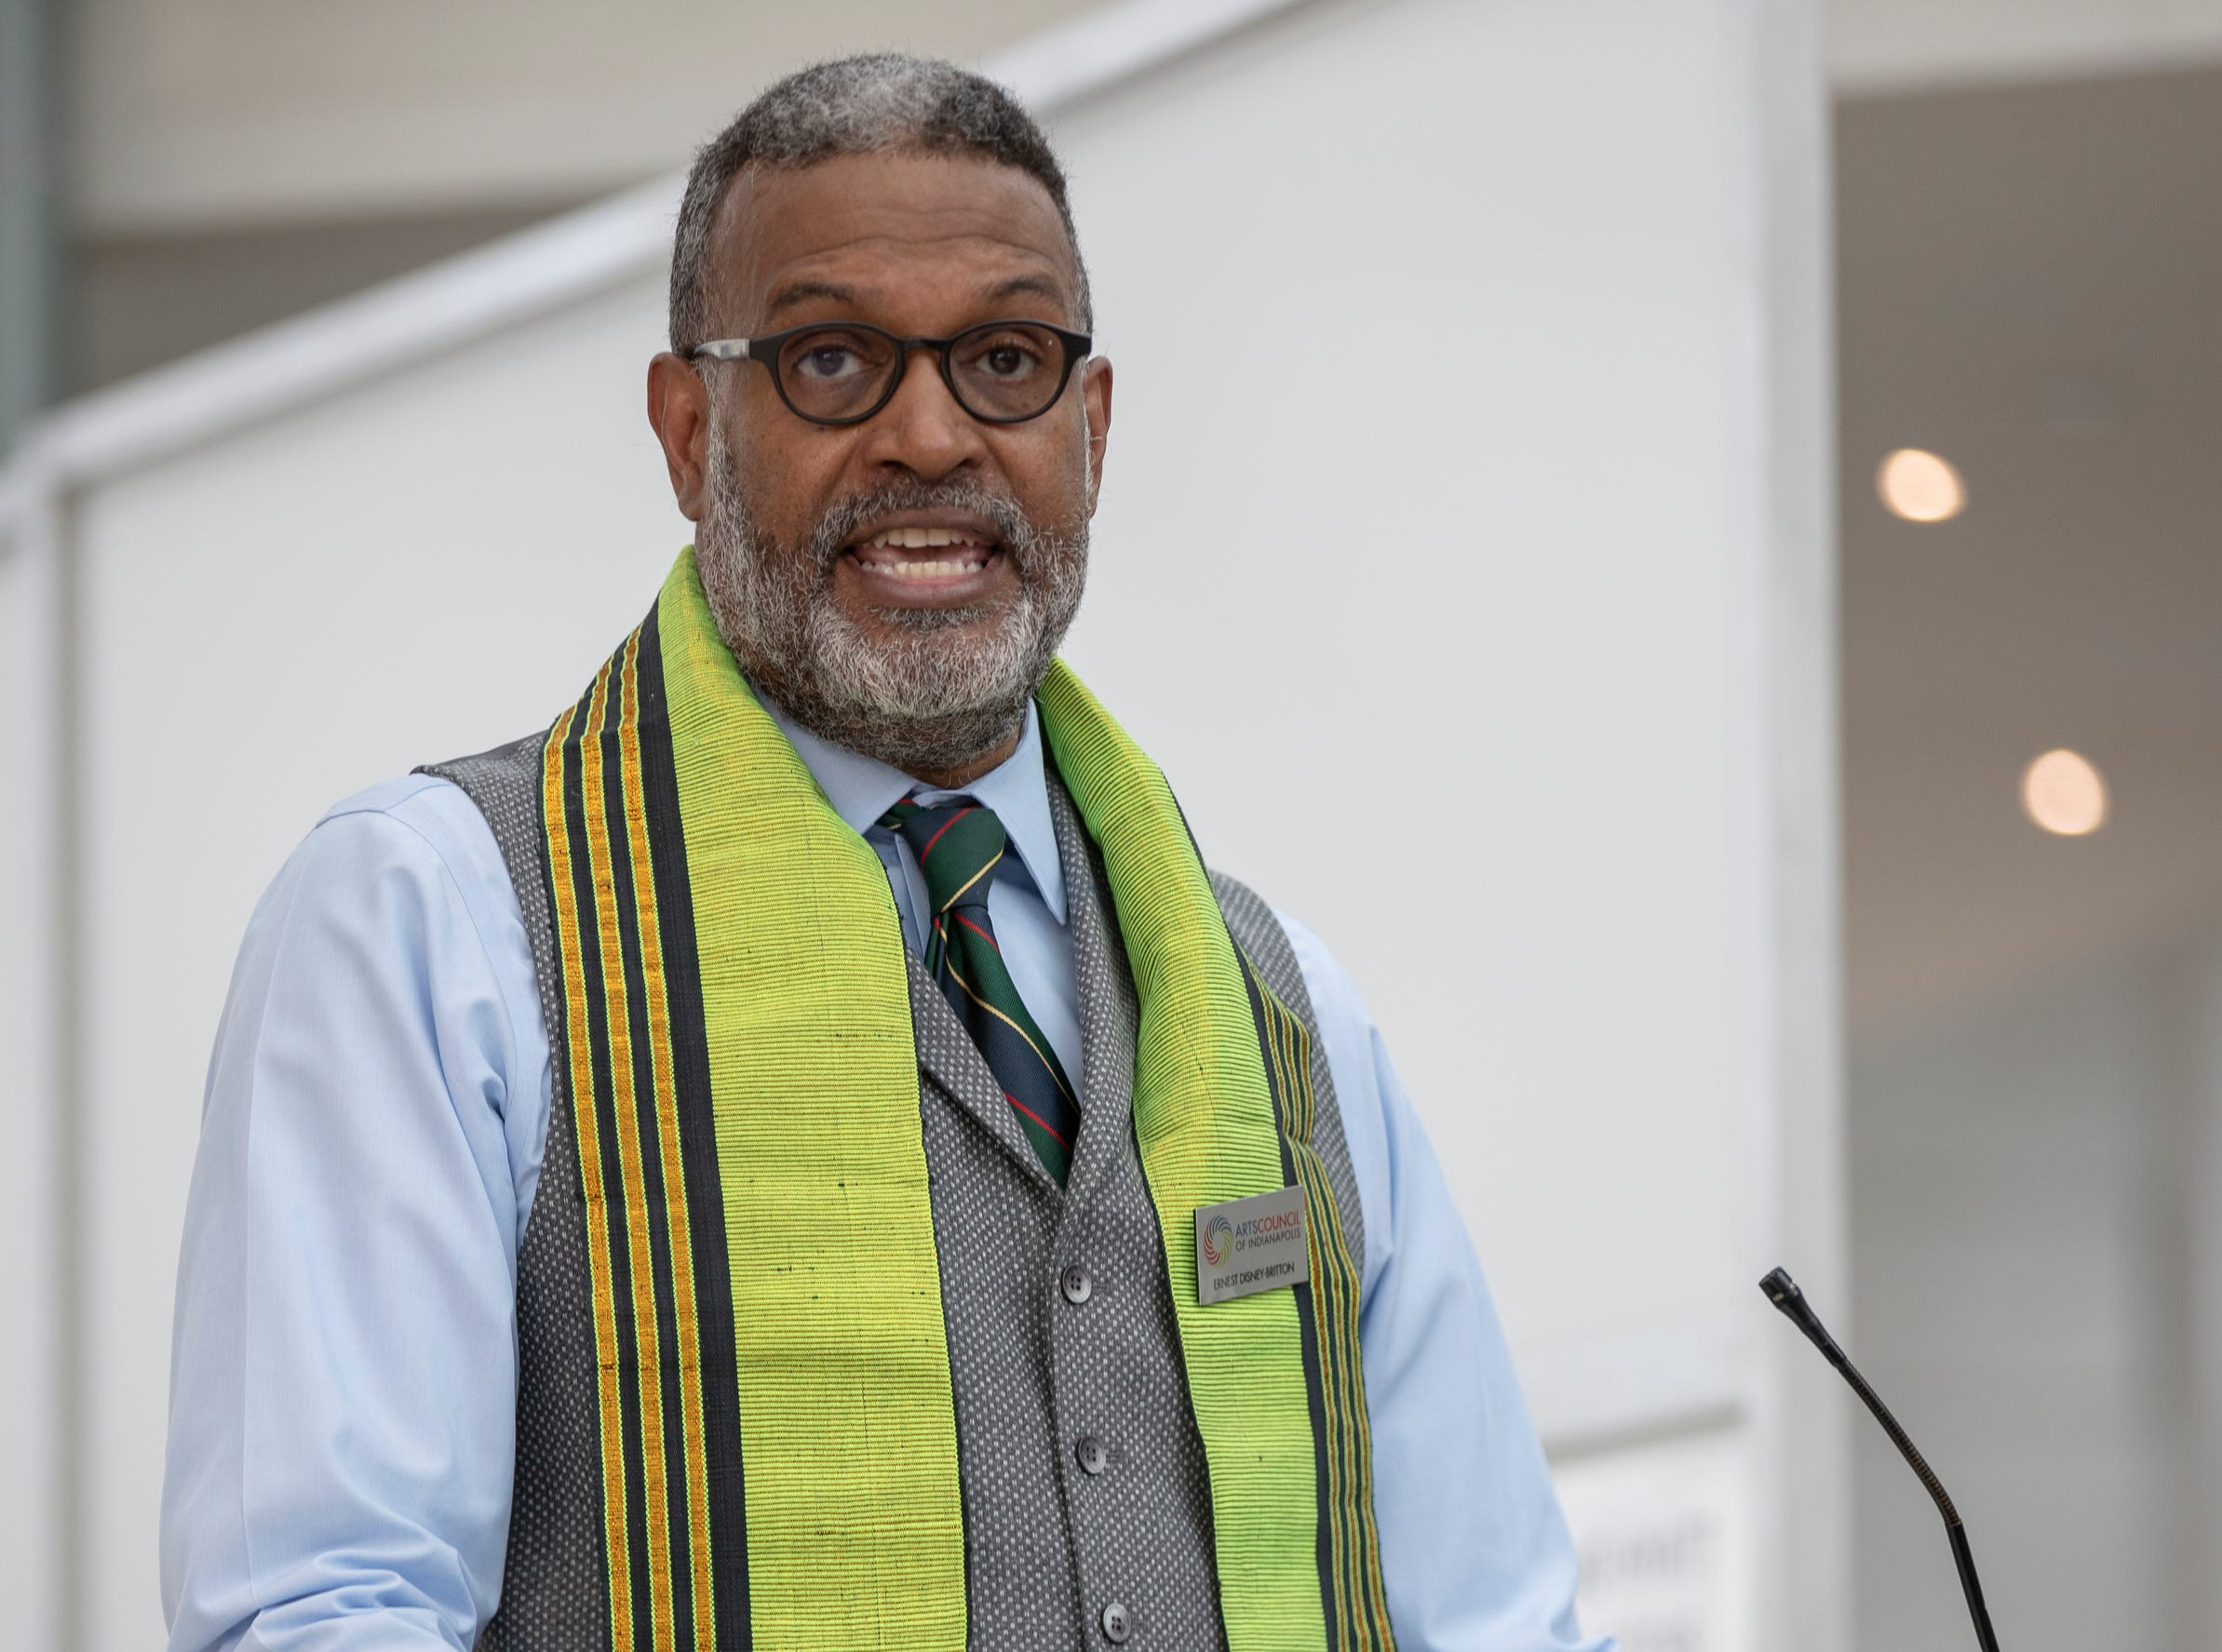 Ernest Disney-Britton, with the Arts Council of Indianapolis, gives the welcoming speech at the 2019 Art and Soul kickoff celebration at the Indianapolis Arts Garden, Indianapolis, Saturday, Feb. 2, 2019.